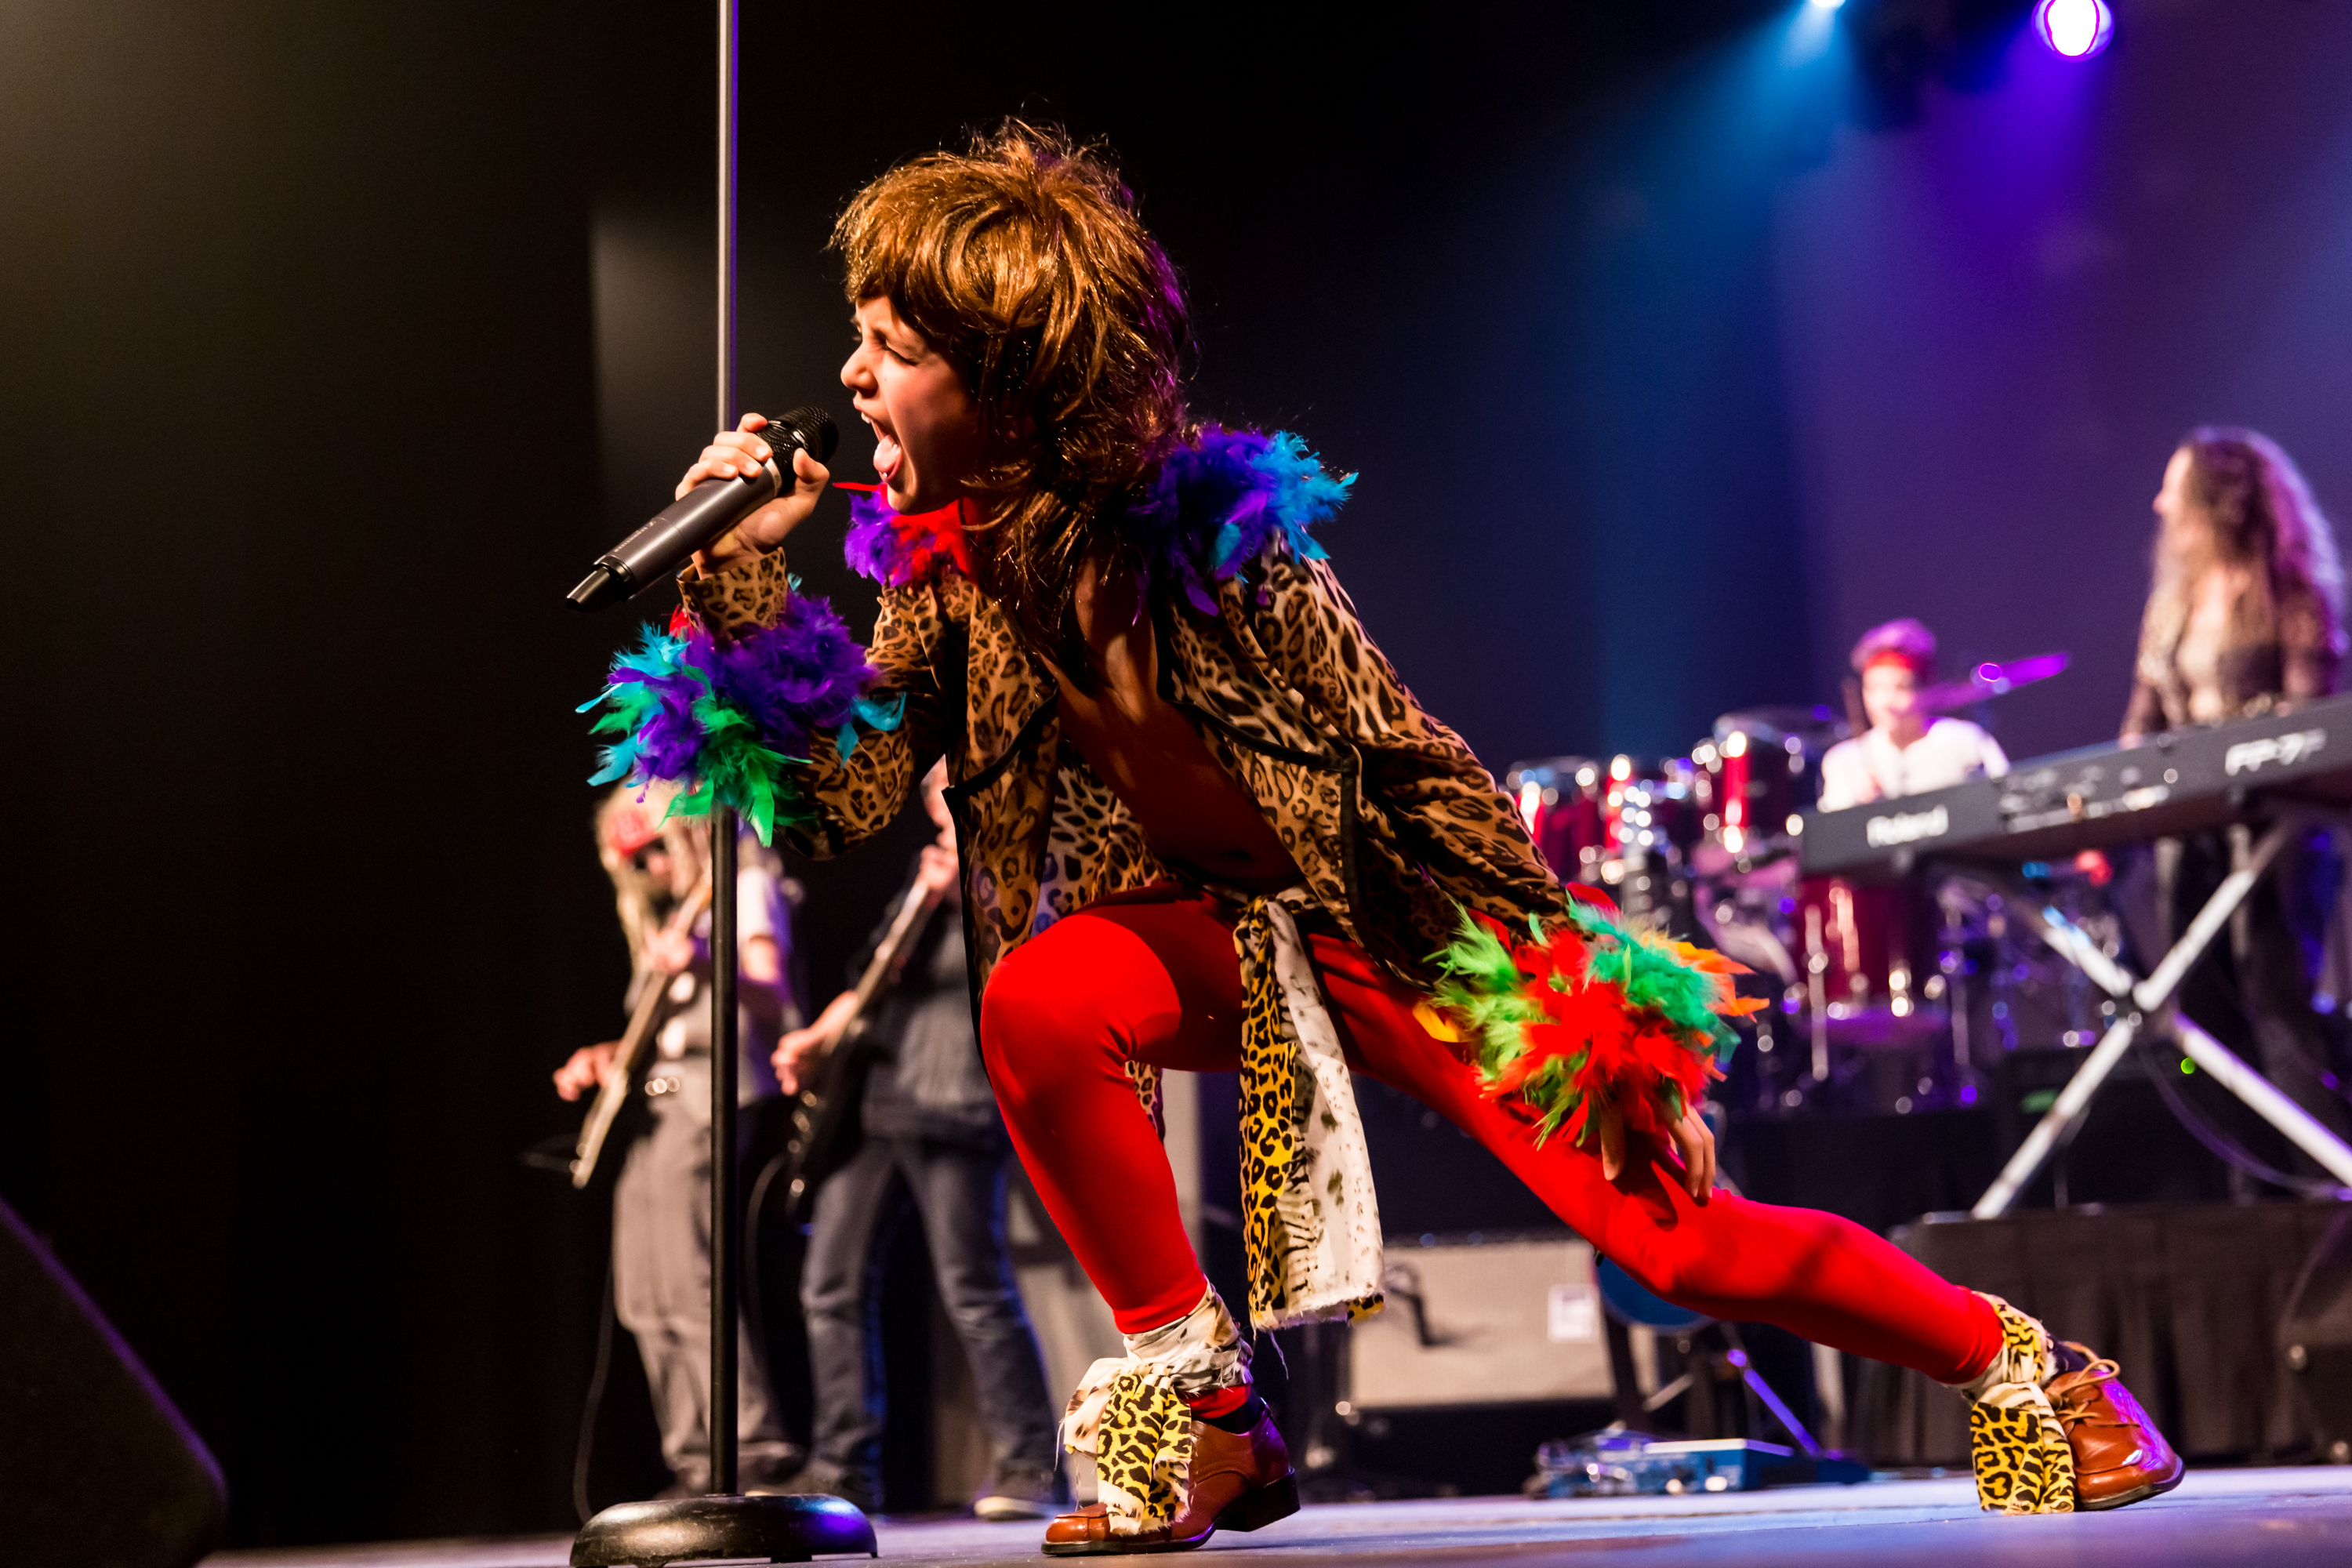 Prism to rock with Kelowna music school students - InfoNews